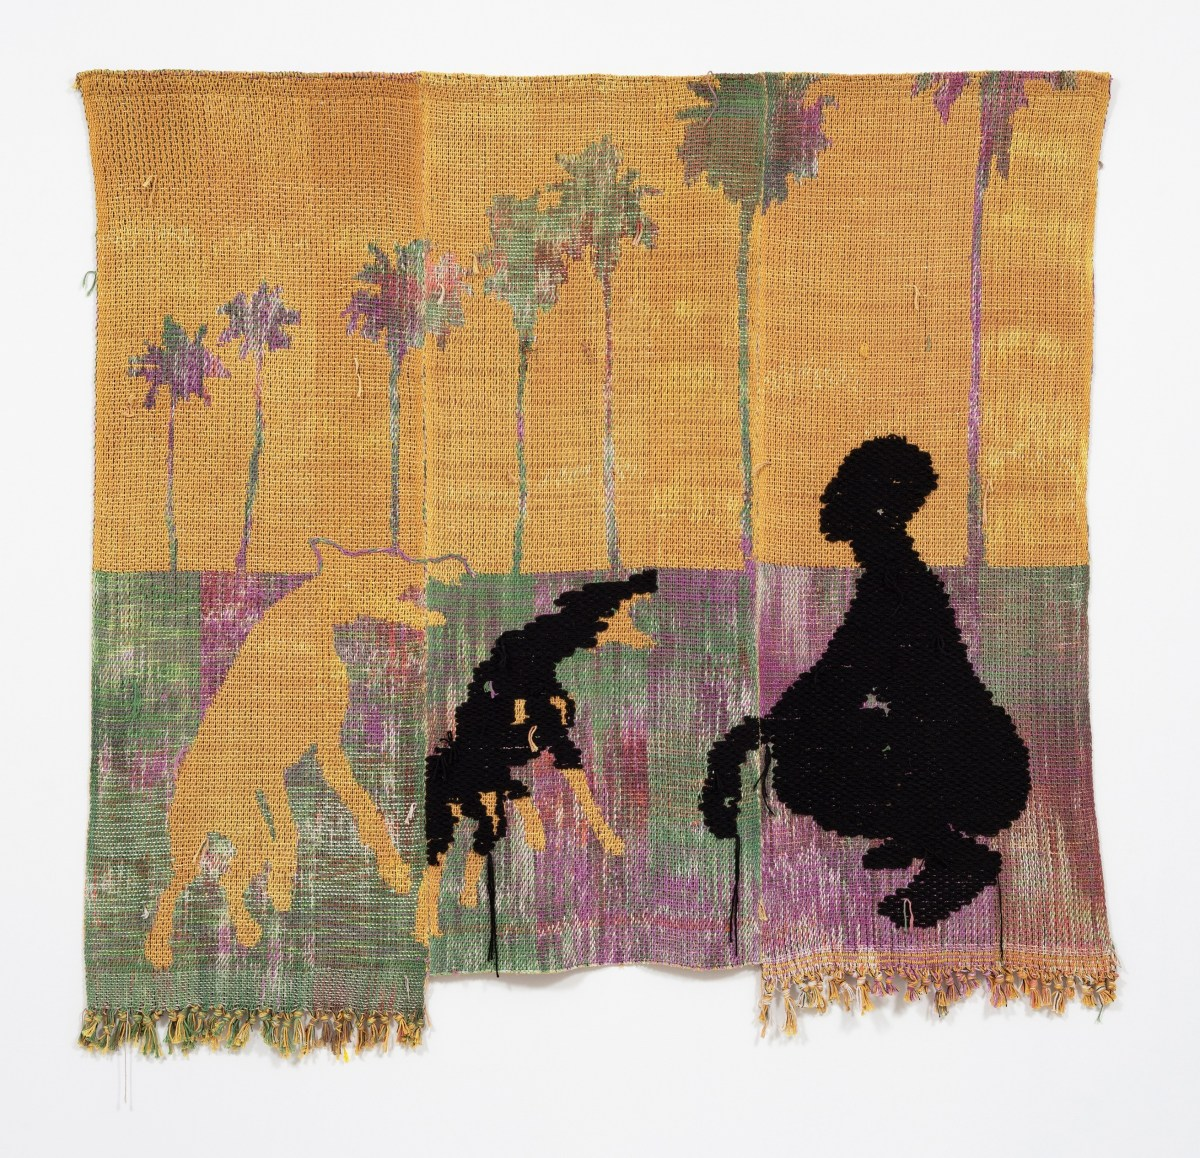 Diedrick Brackens, in the decadence of silence (2018), hand-woven cotton and acrylic yarn, 75 x 74 inches.; Credit: Courtesy Artadia